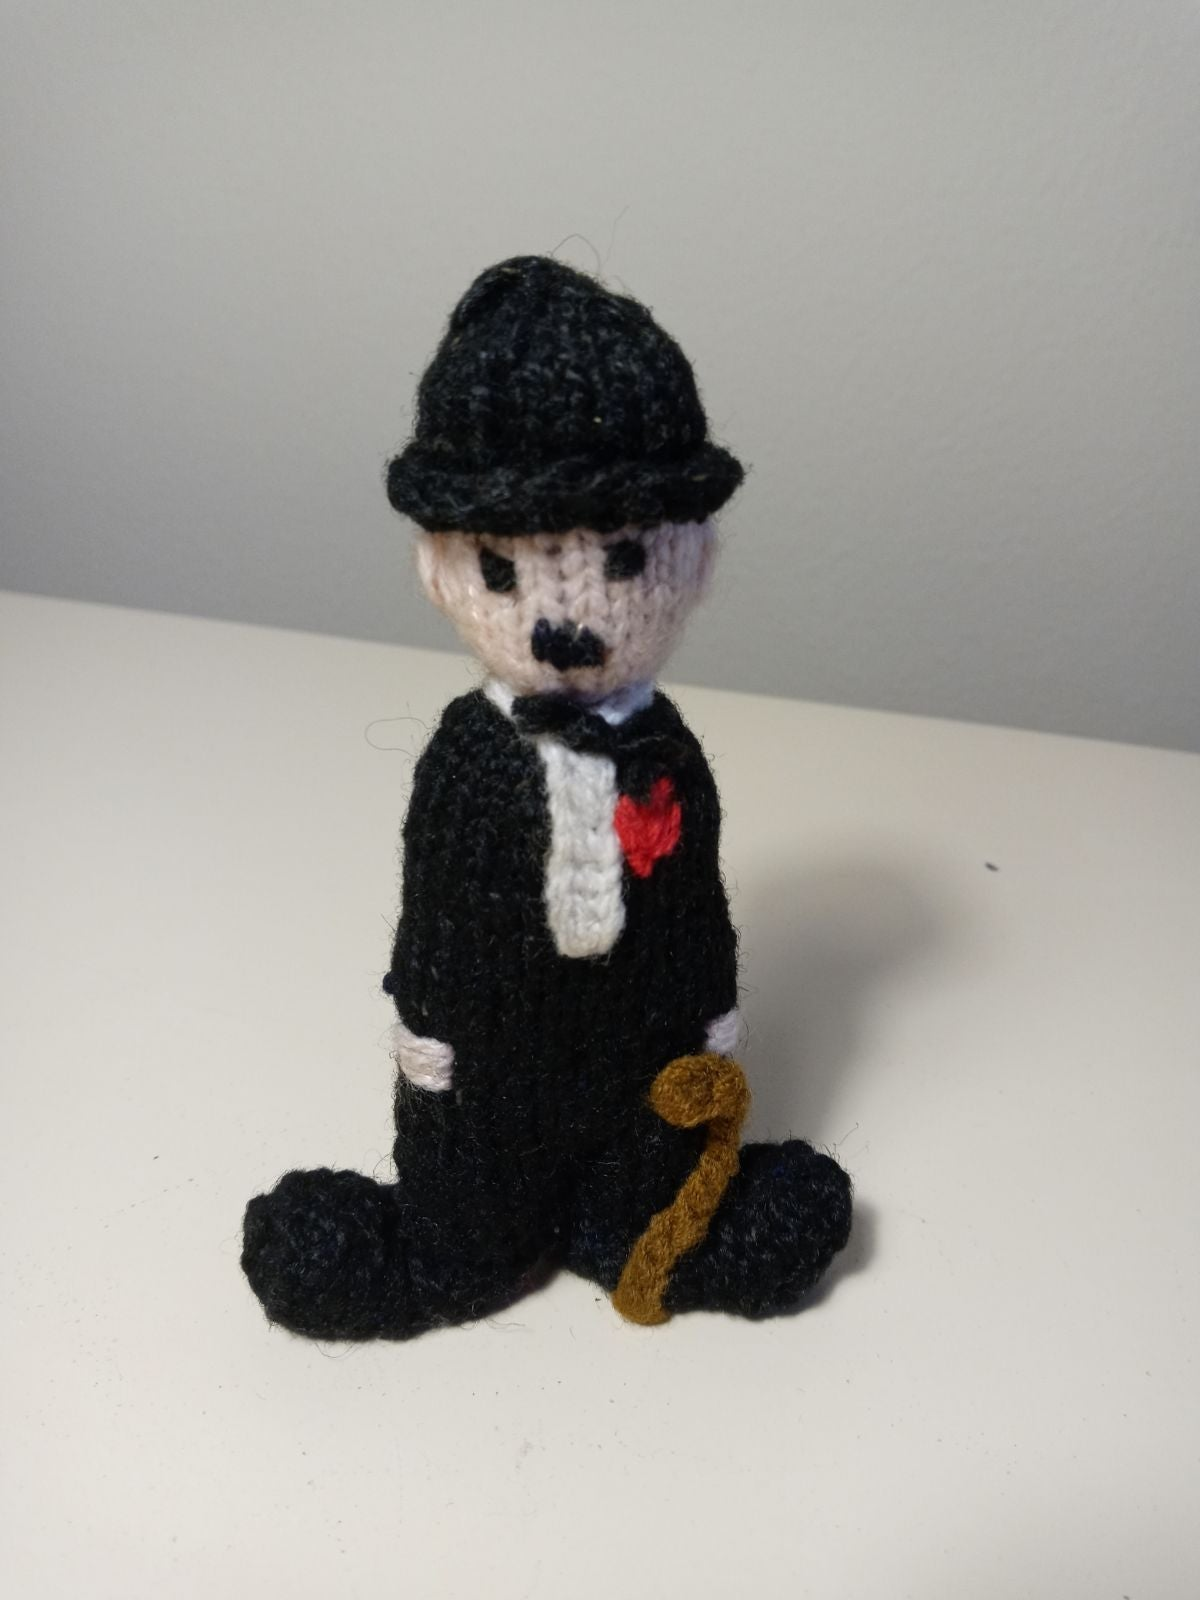 Small knitted Charlie Chaplin doll